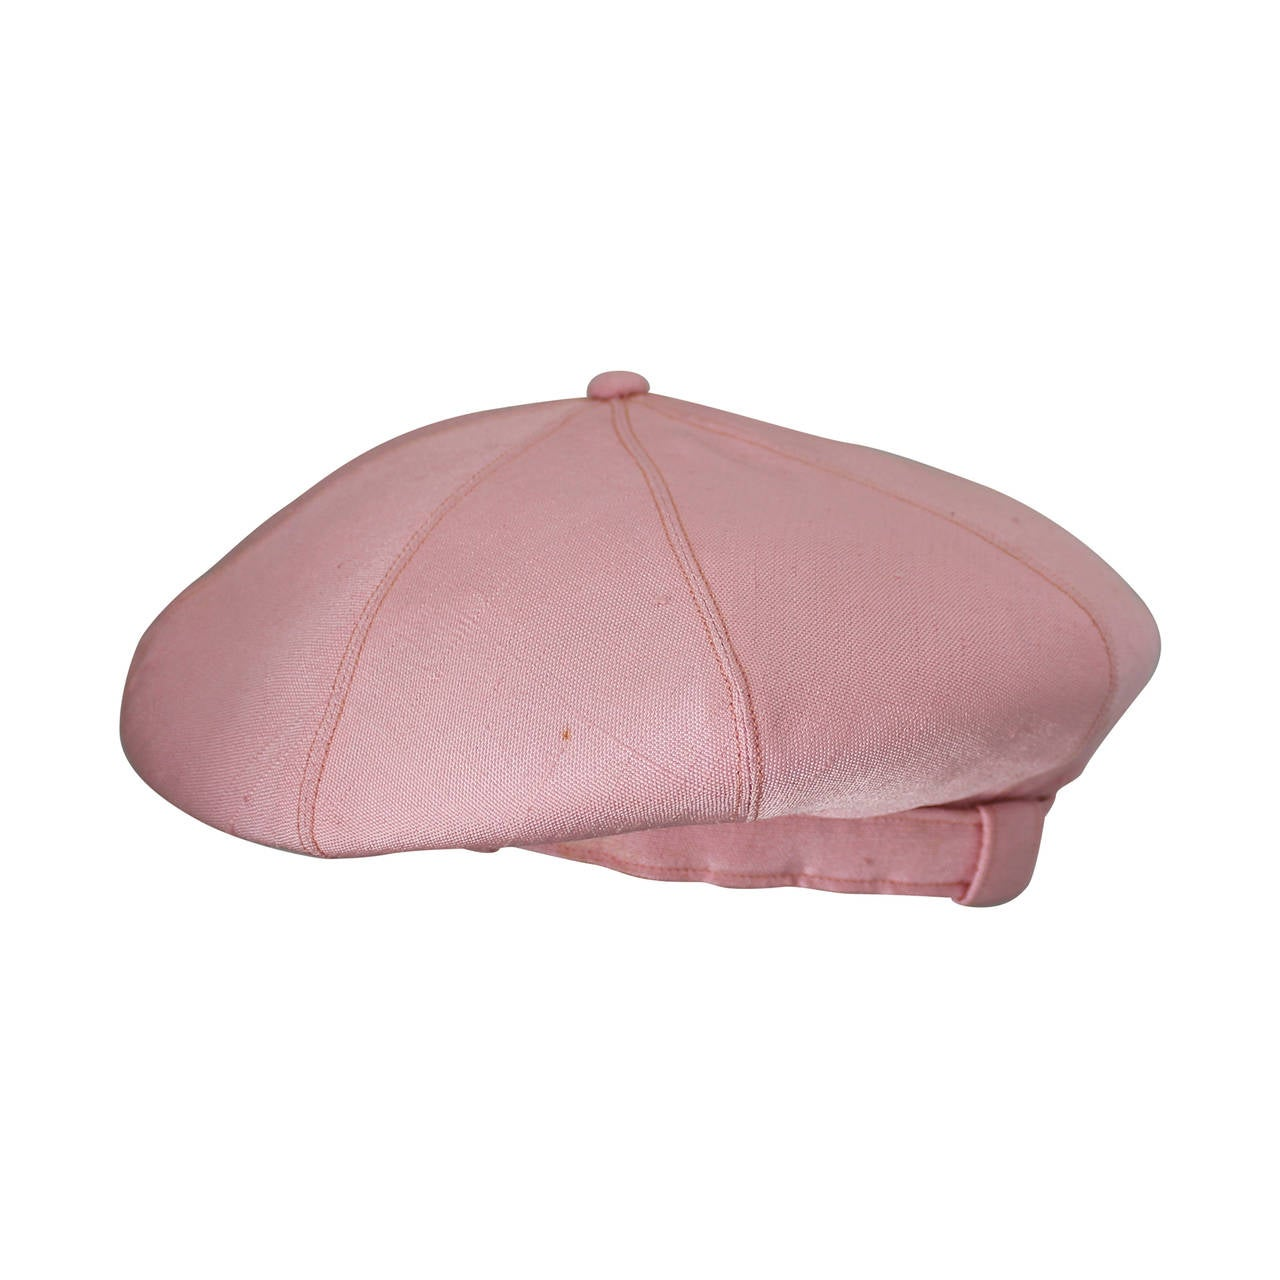 Norman Norell 1960's Vintage Silk Pink Driving Cap 1